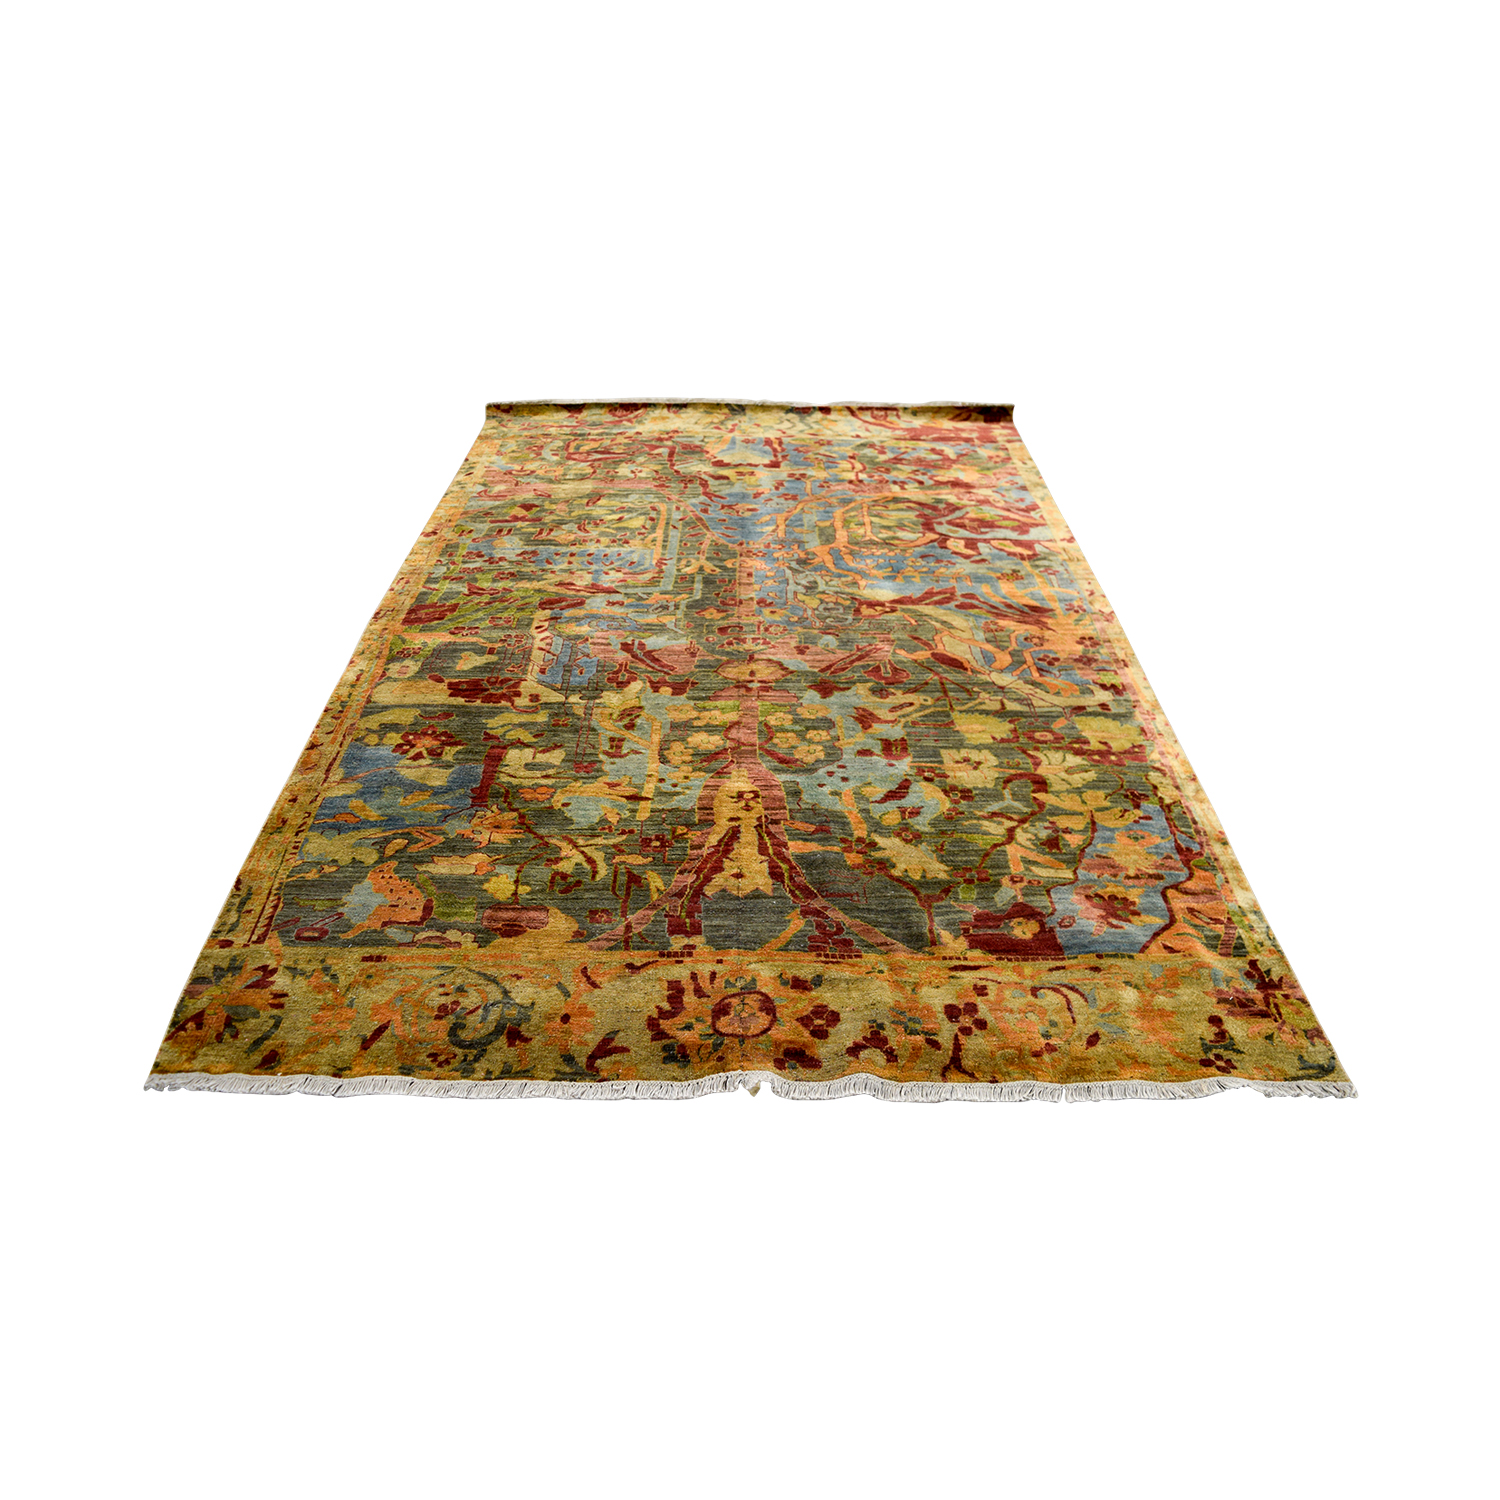 Obeetee Obeetee Hand Knotted Red and Green Floral Wool Rug price